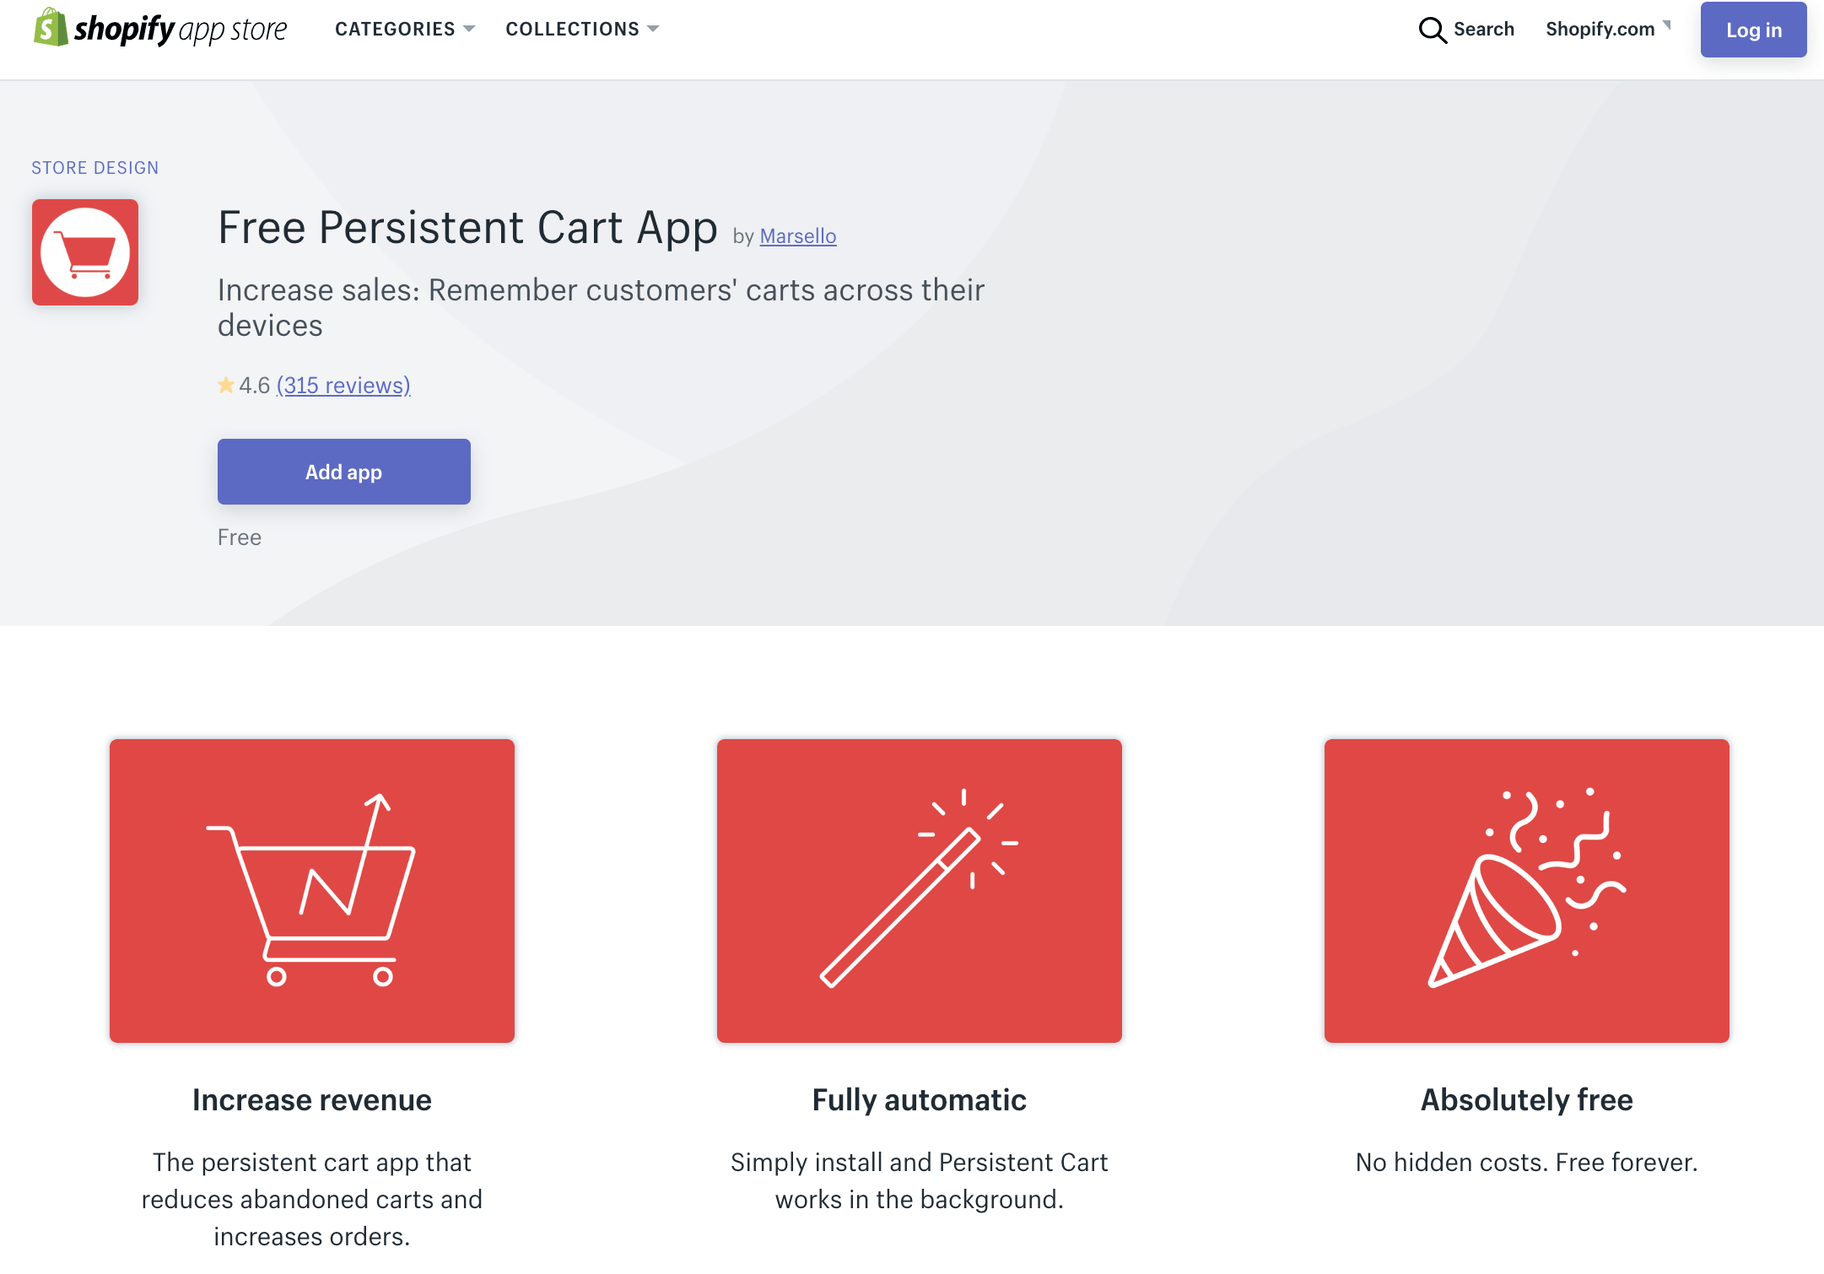 Free Persistent Cart App by Marsello